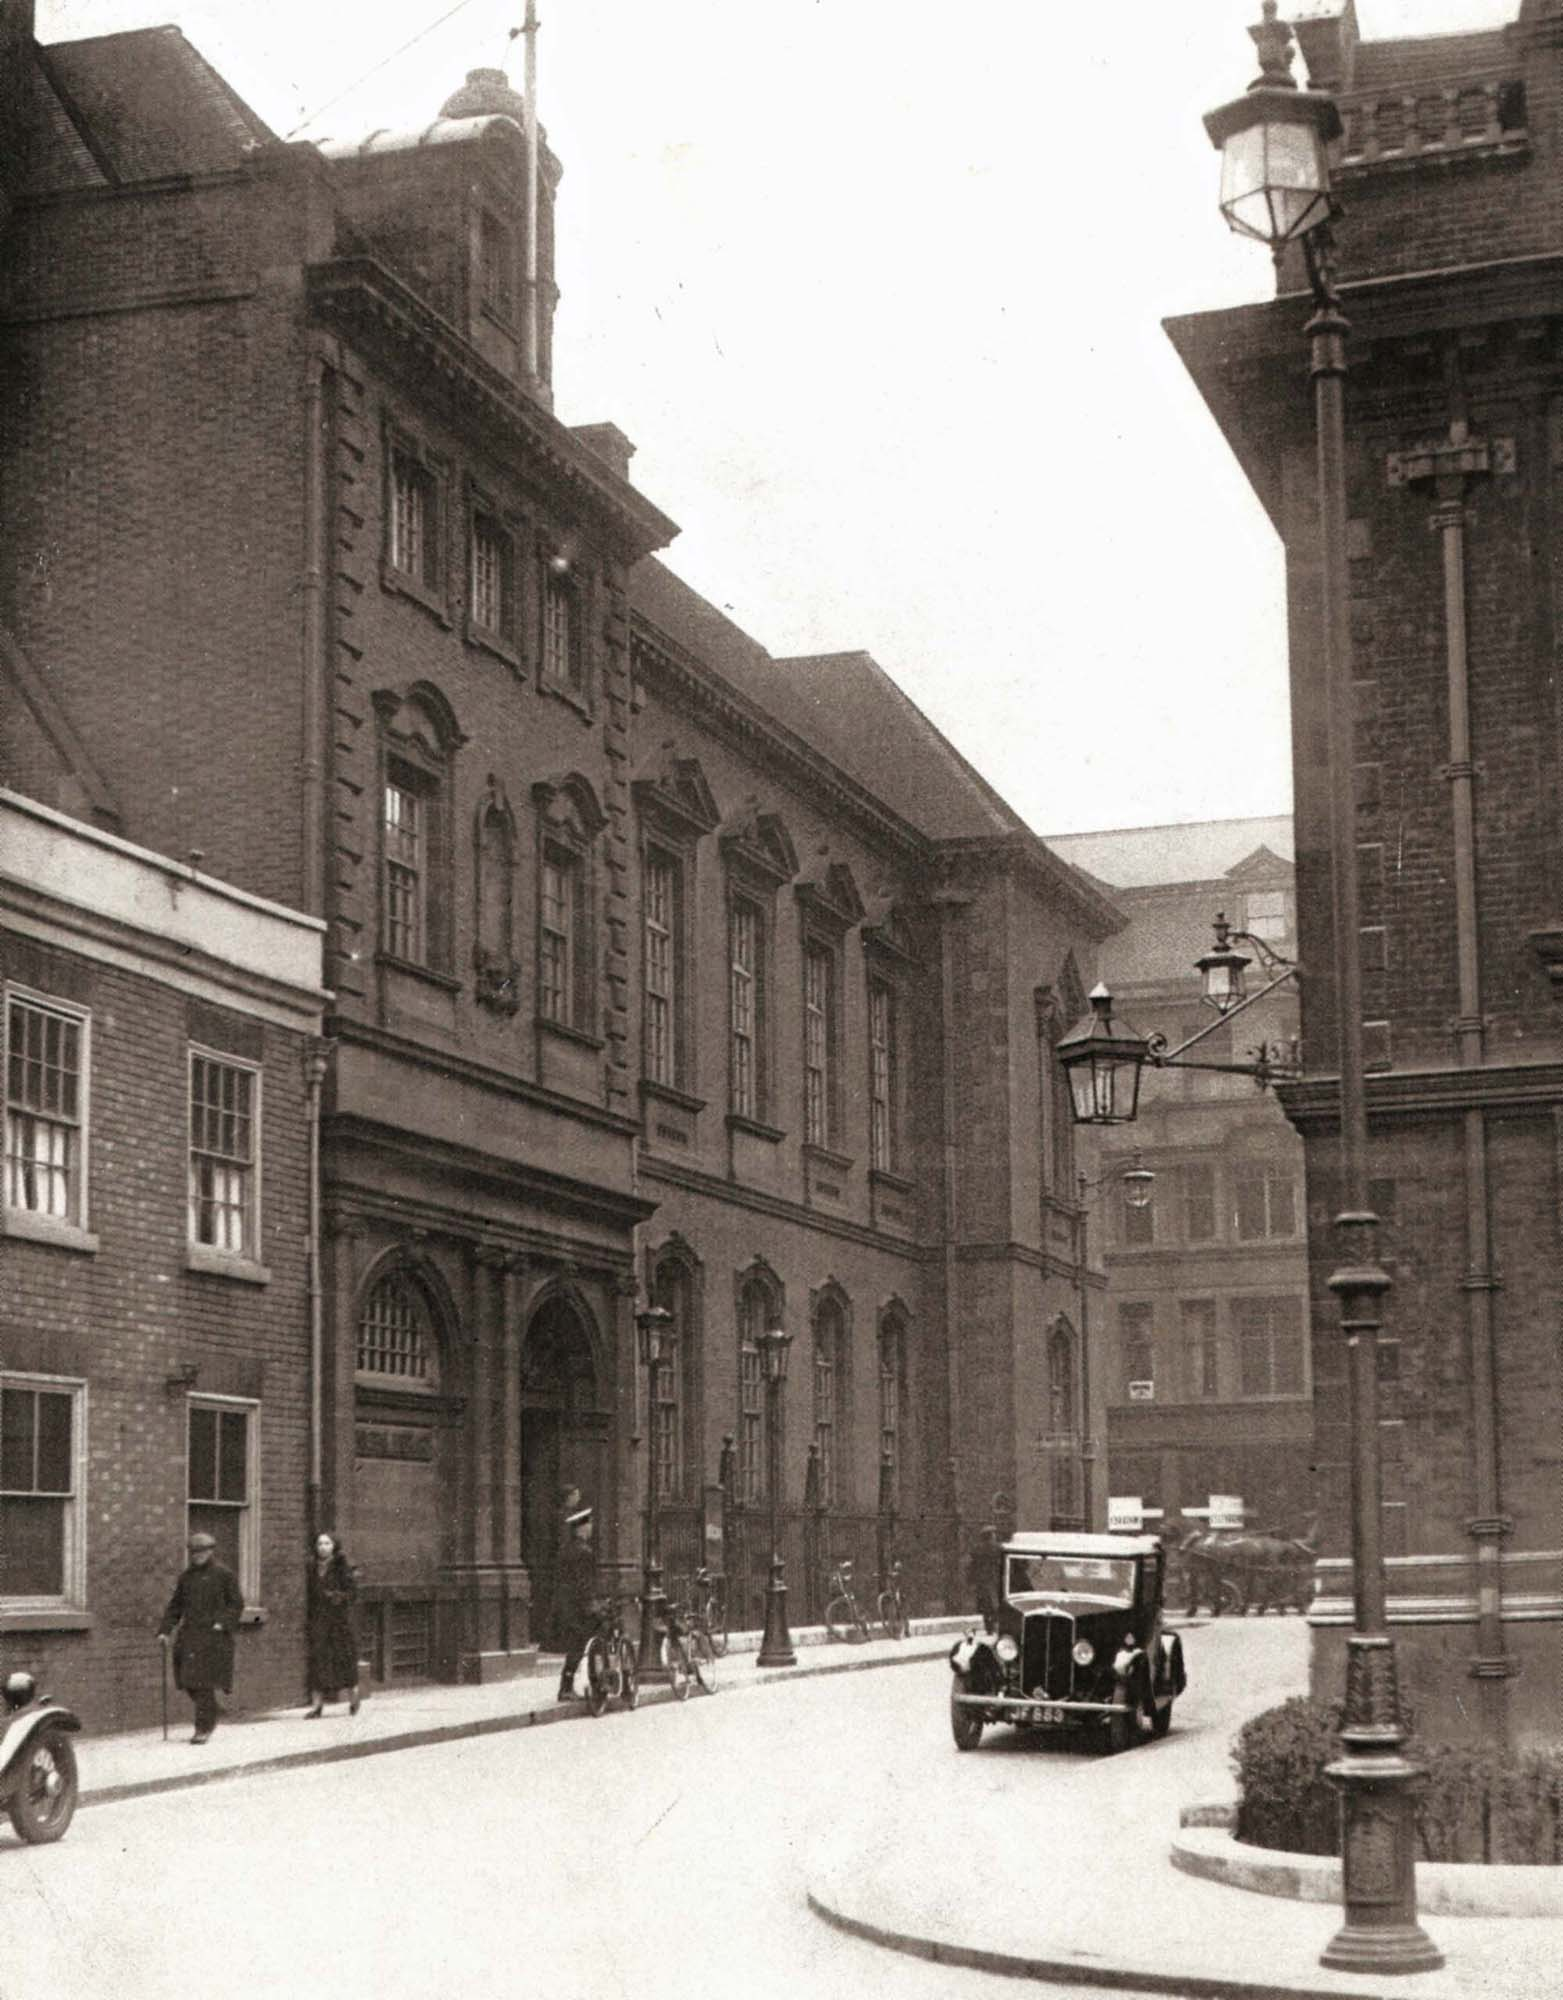 The Library and Bishop Street in 1930 -